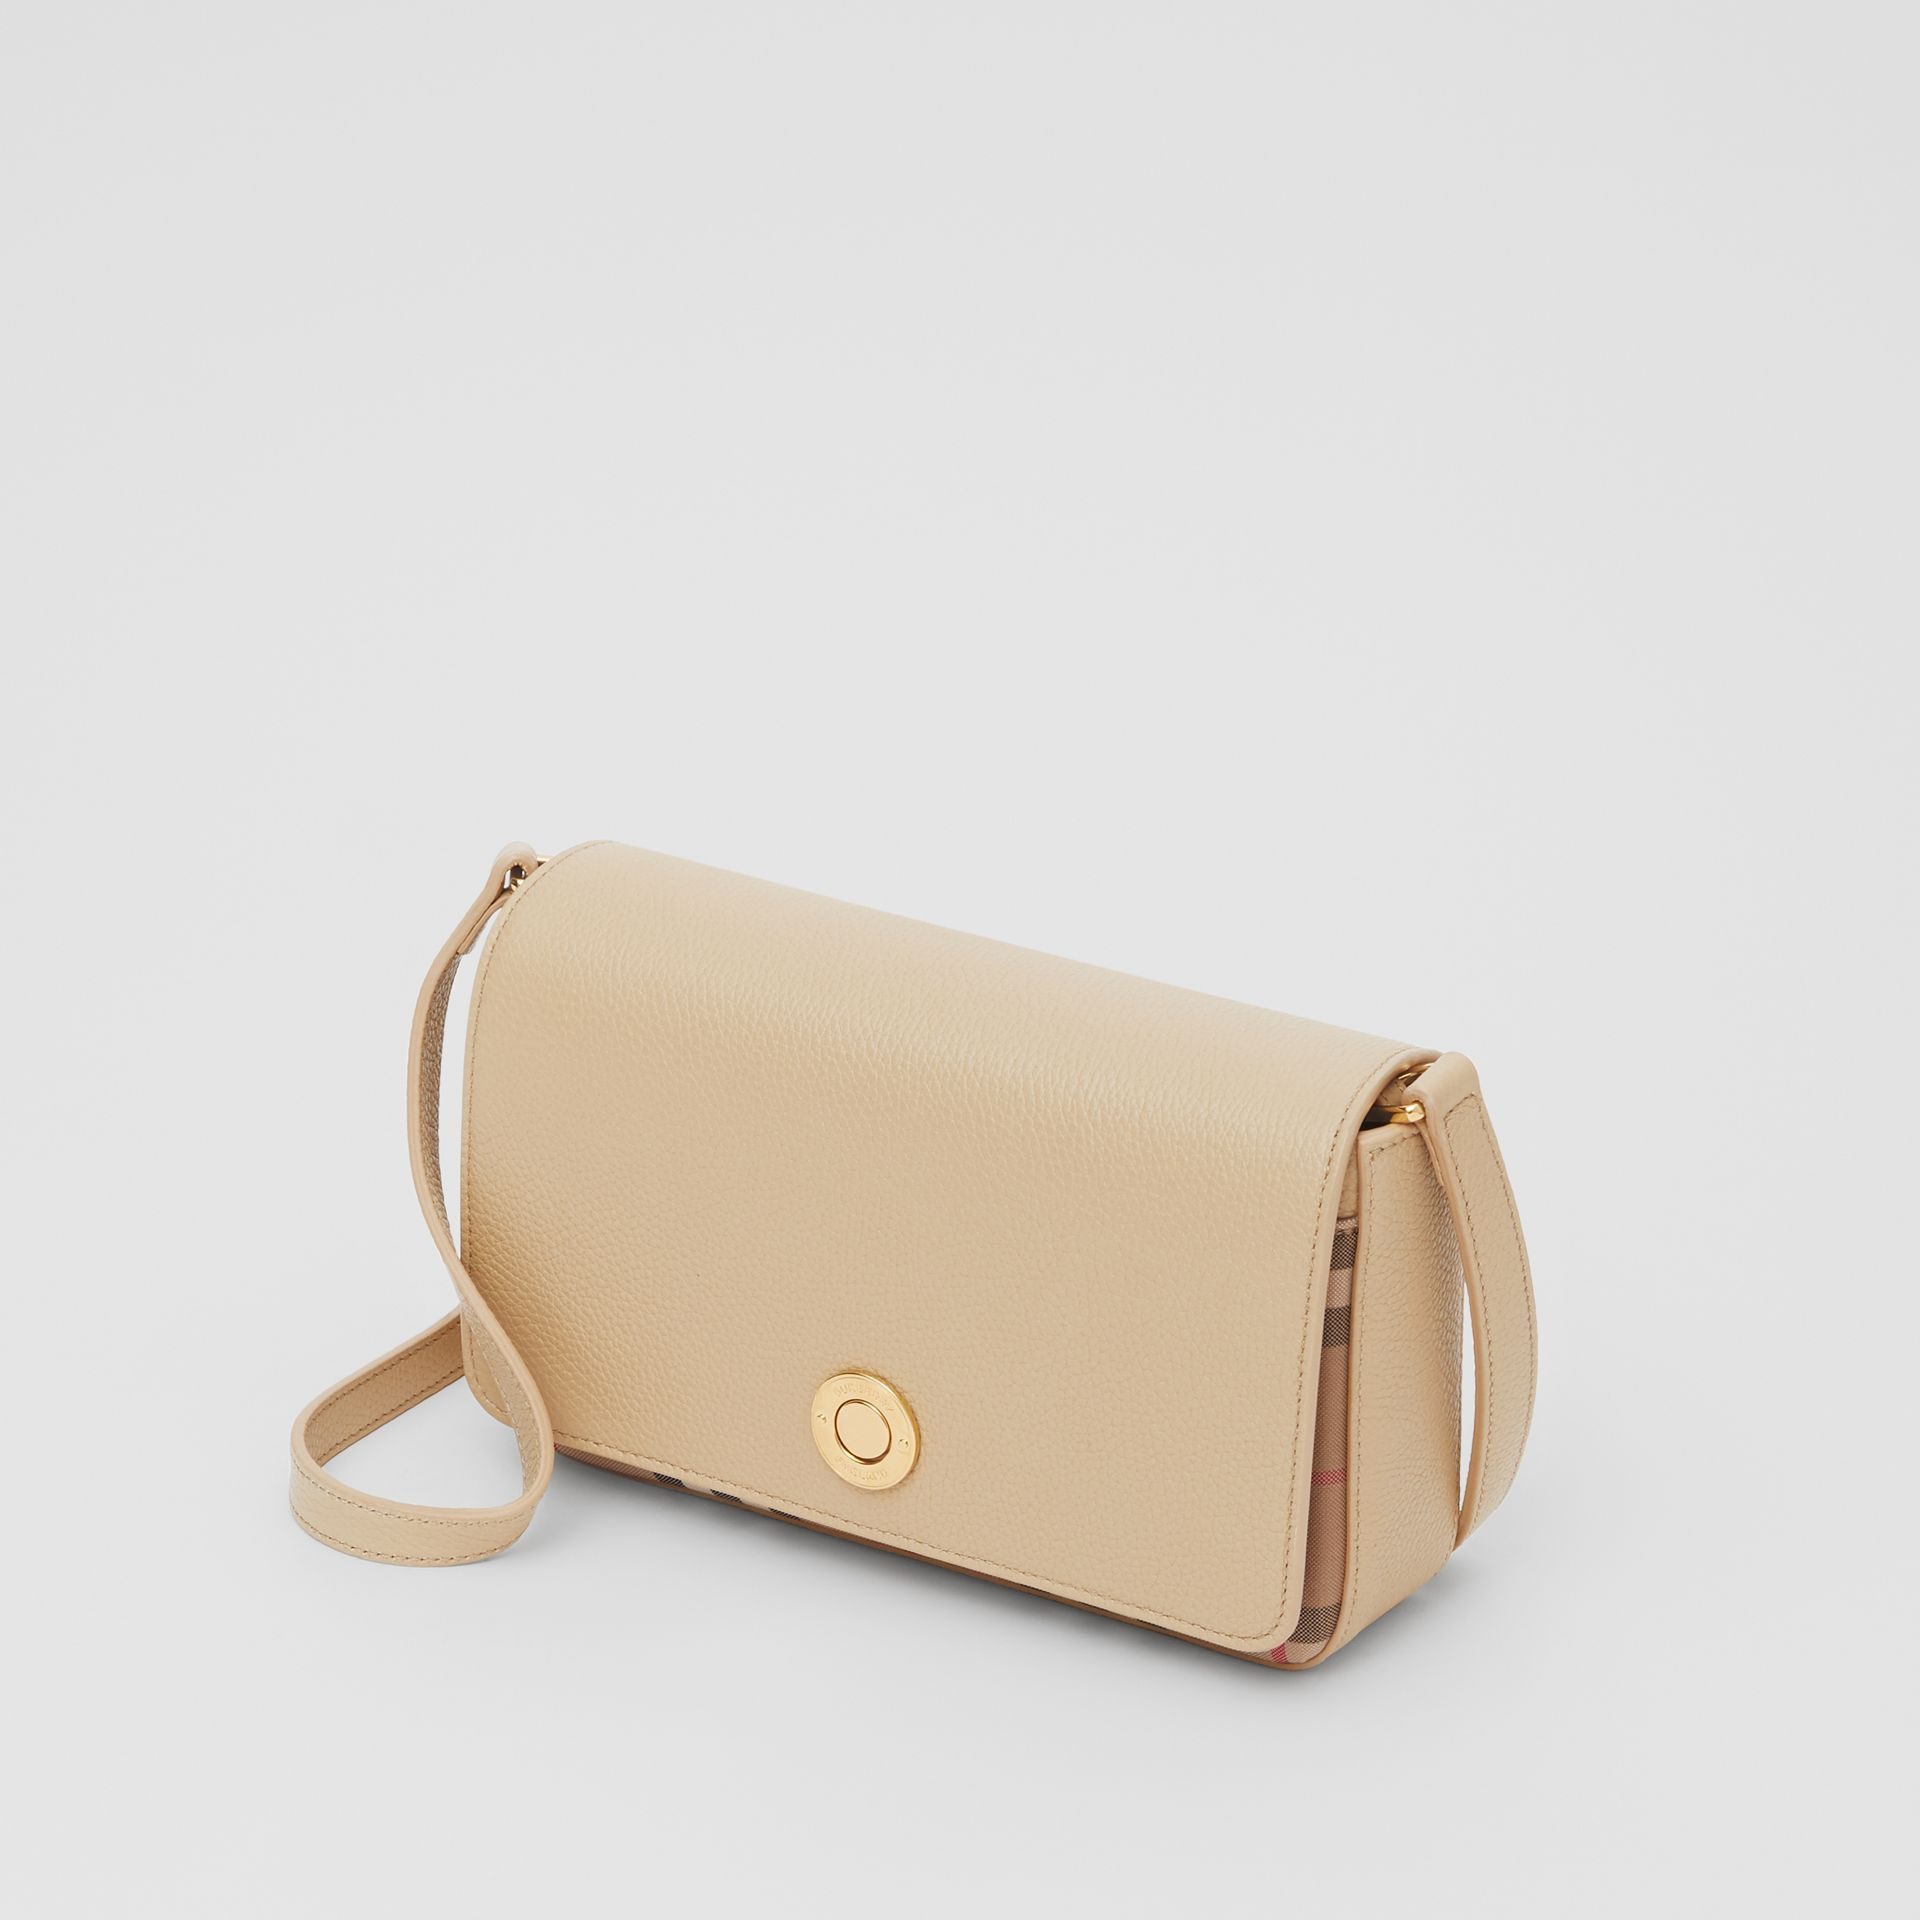 Small Leather and Vintage Check Crossbody Bag in Light Beige - Women | Burberry United Kingdom - gallery image 2